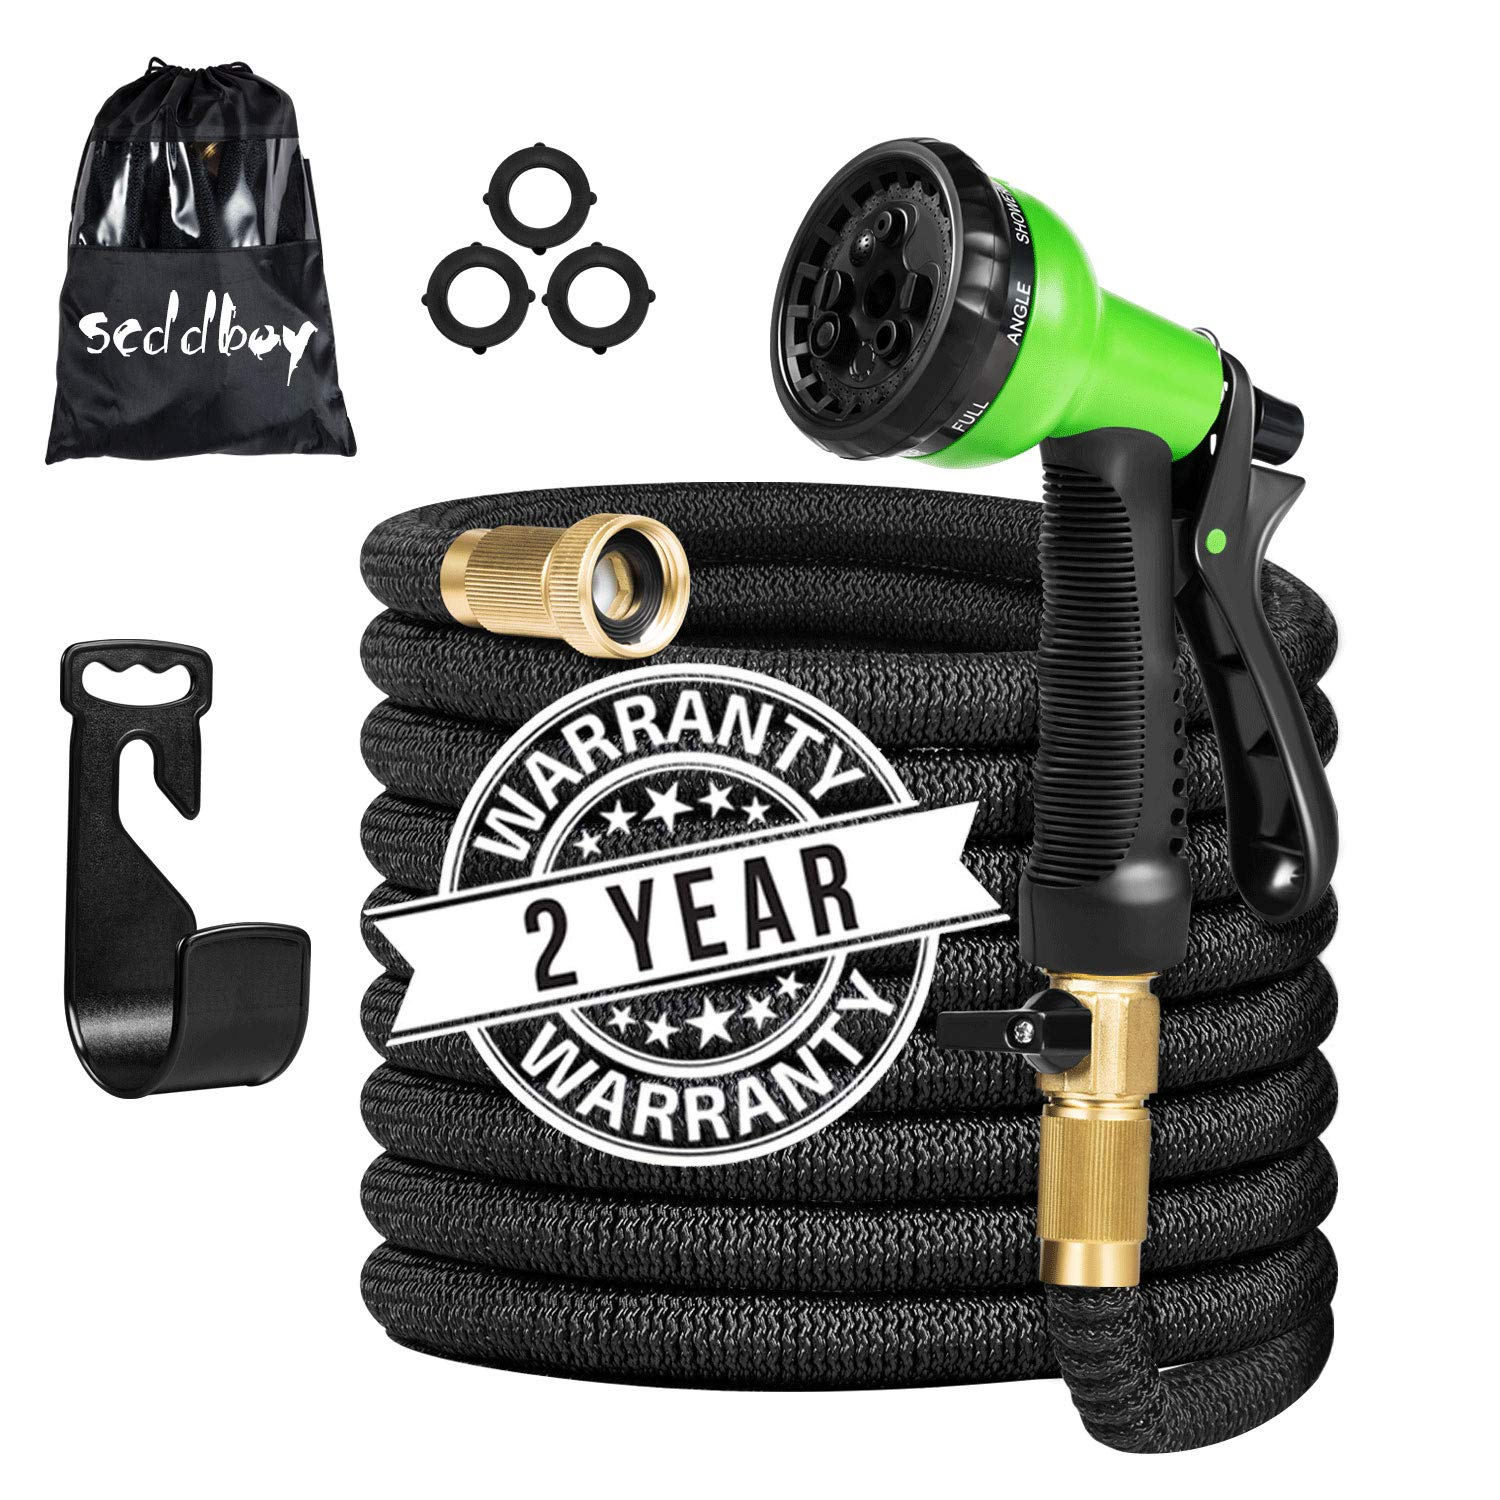 "Scboy Flexible and Expandable Garden Hose - 50 Feet Triple Latex Core Lightweight Water Hoses with 3/4"" Soild Brass Fittings Free 8 Function Nozzle,Easy Storage Kink Free Expanding Garden Hose"